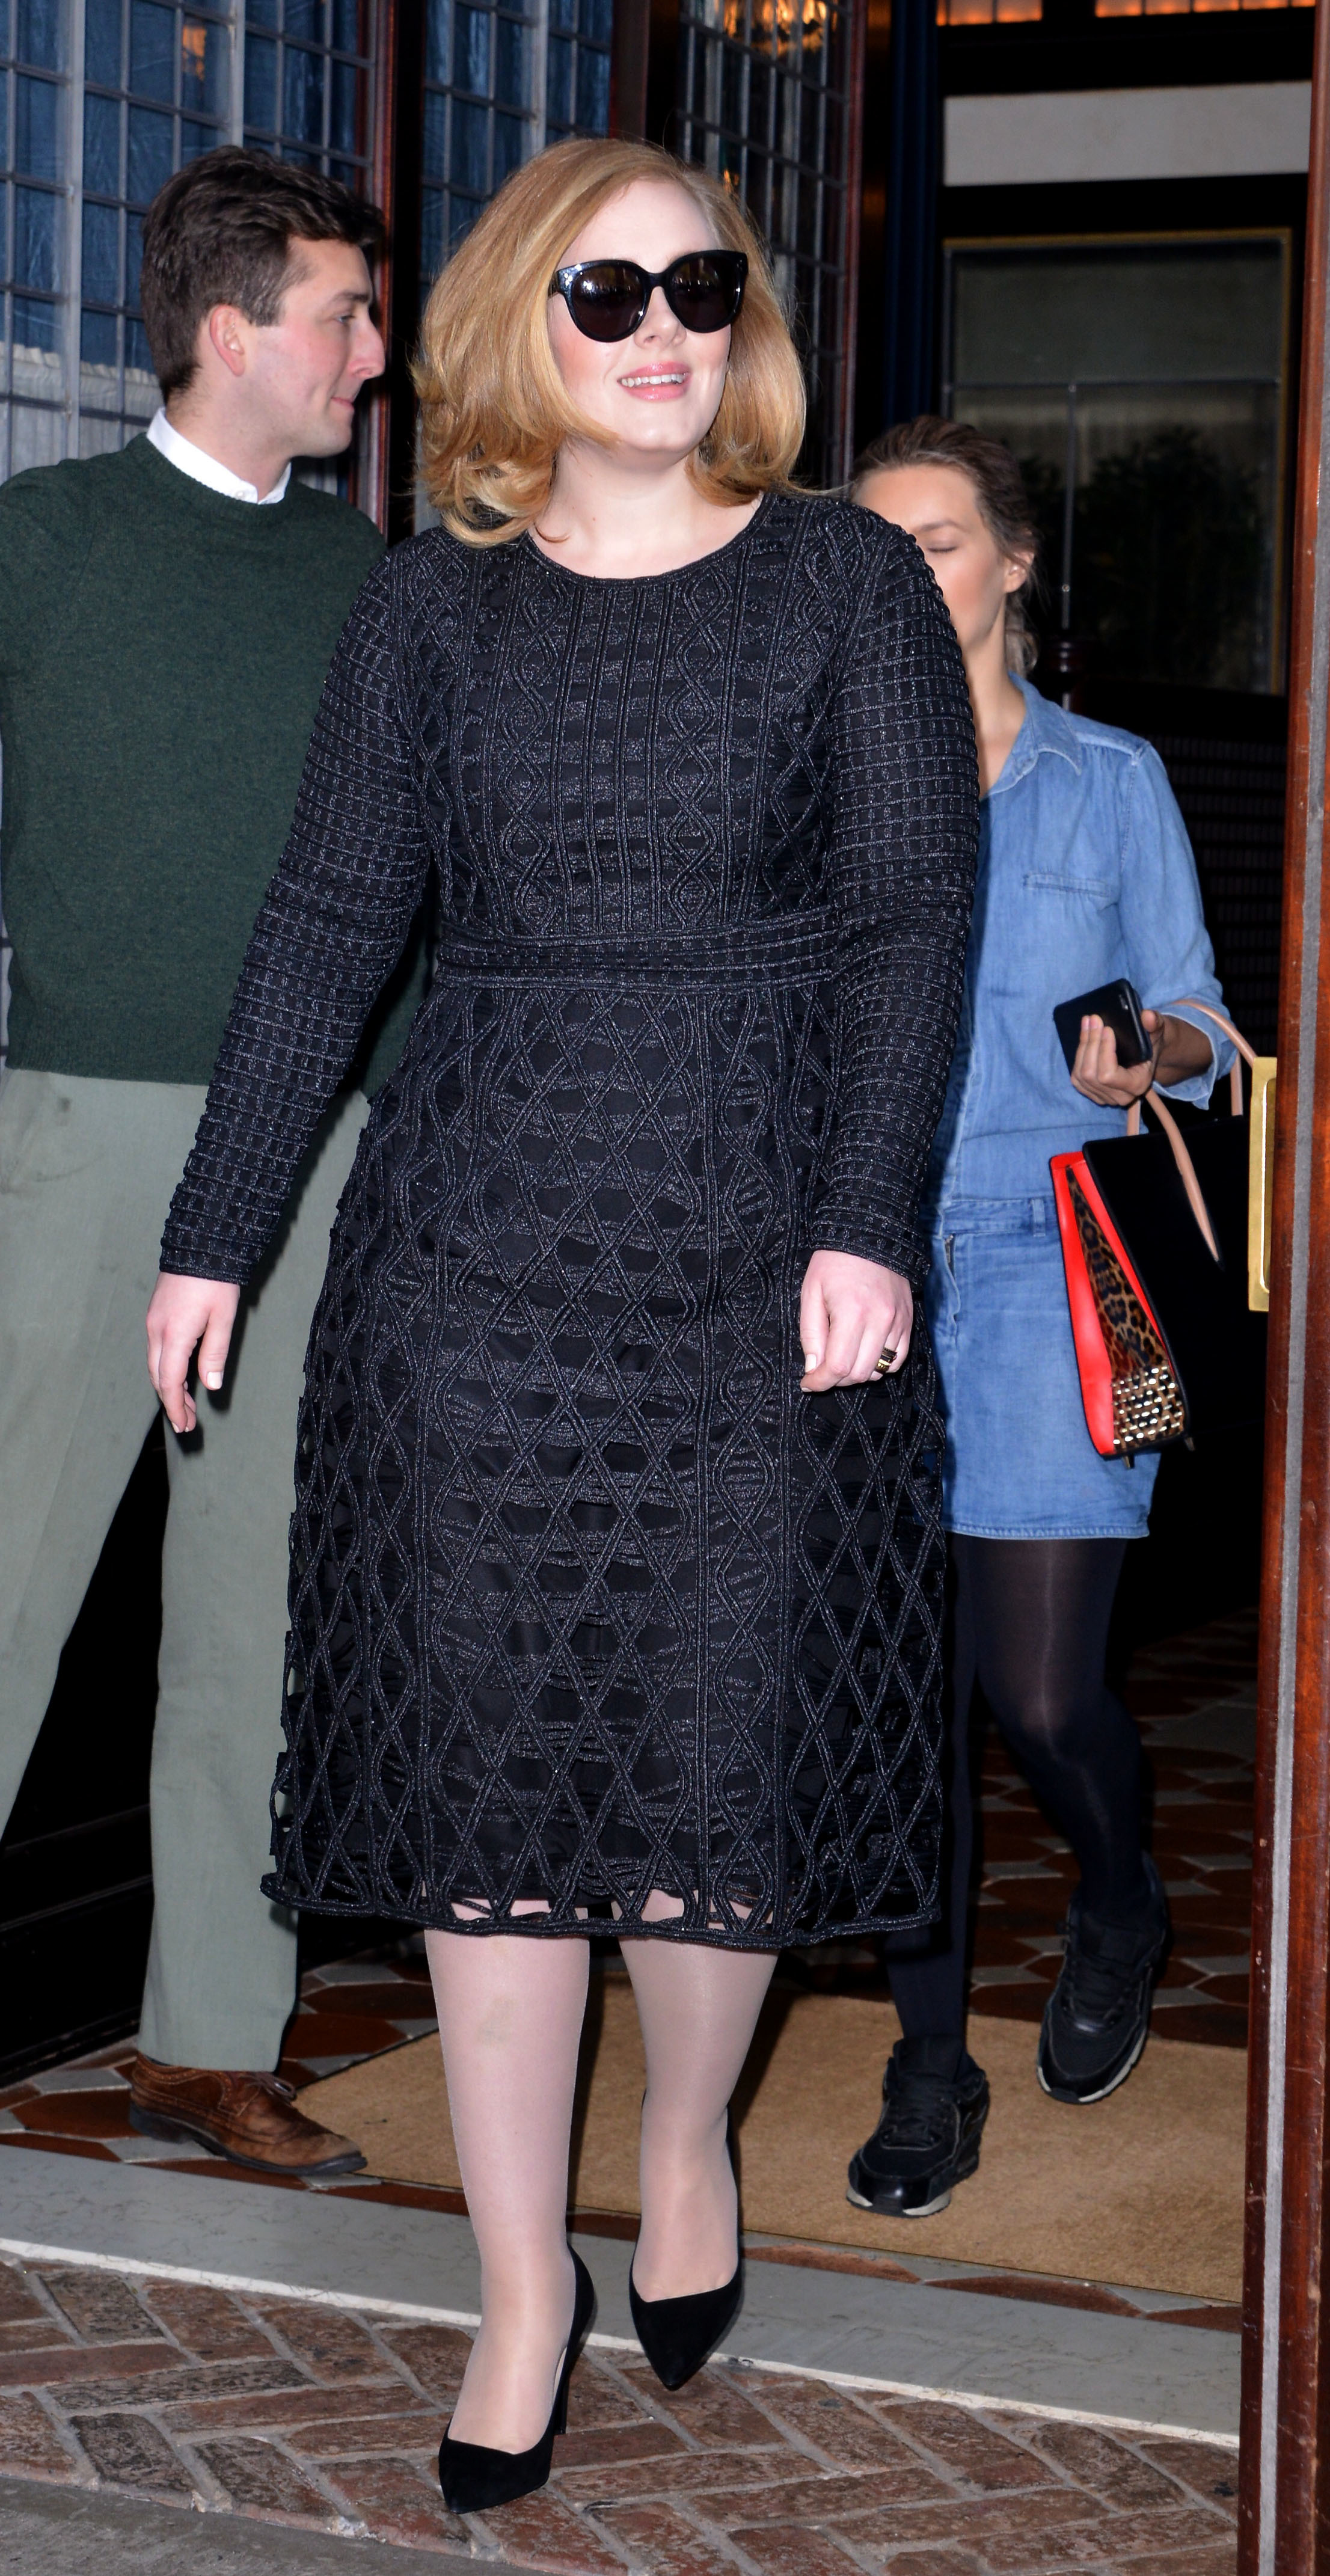 Adele's new fitness routine is about her son, not about losing weight